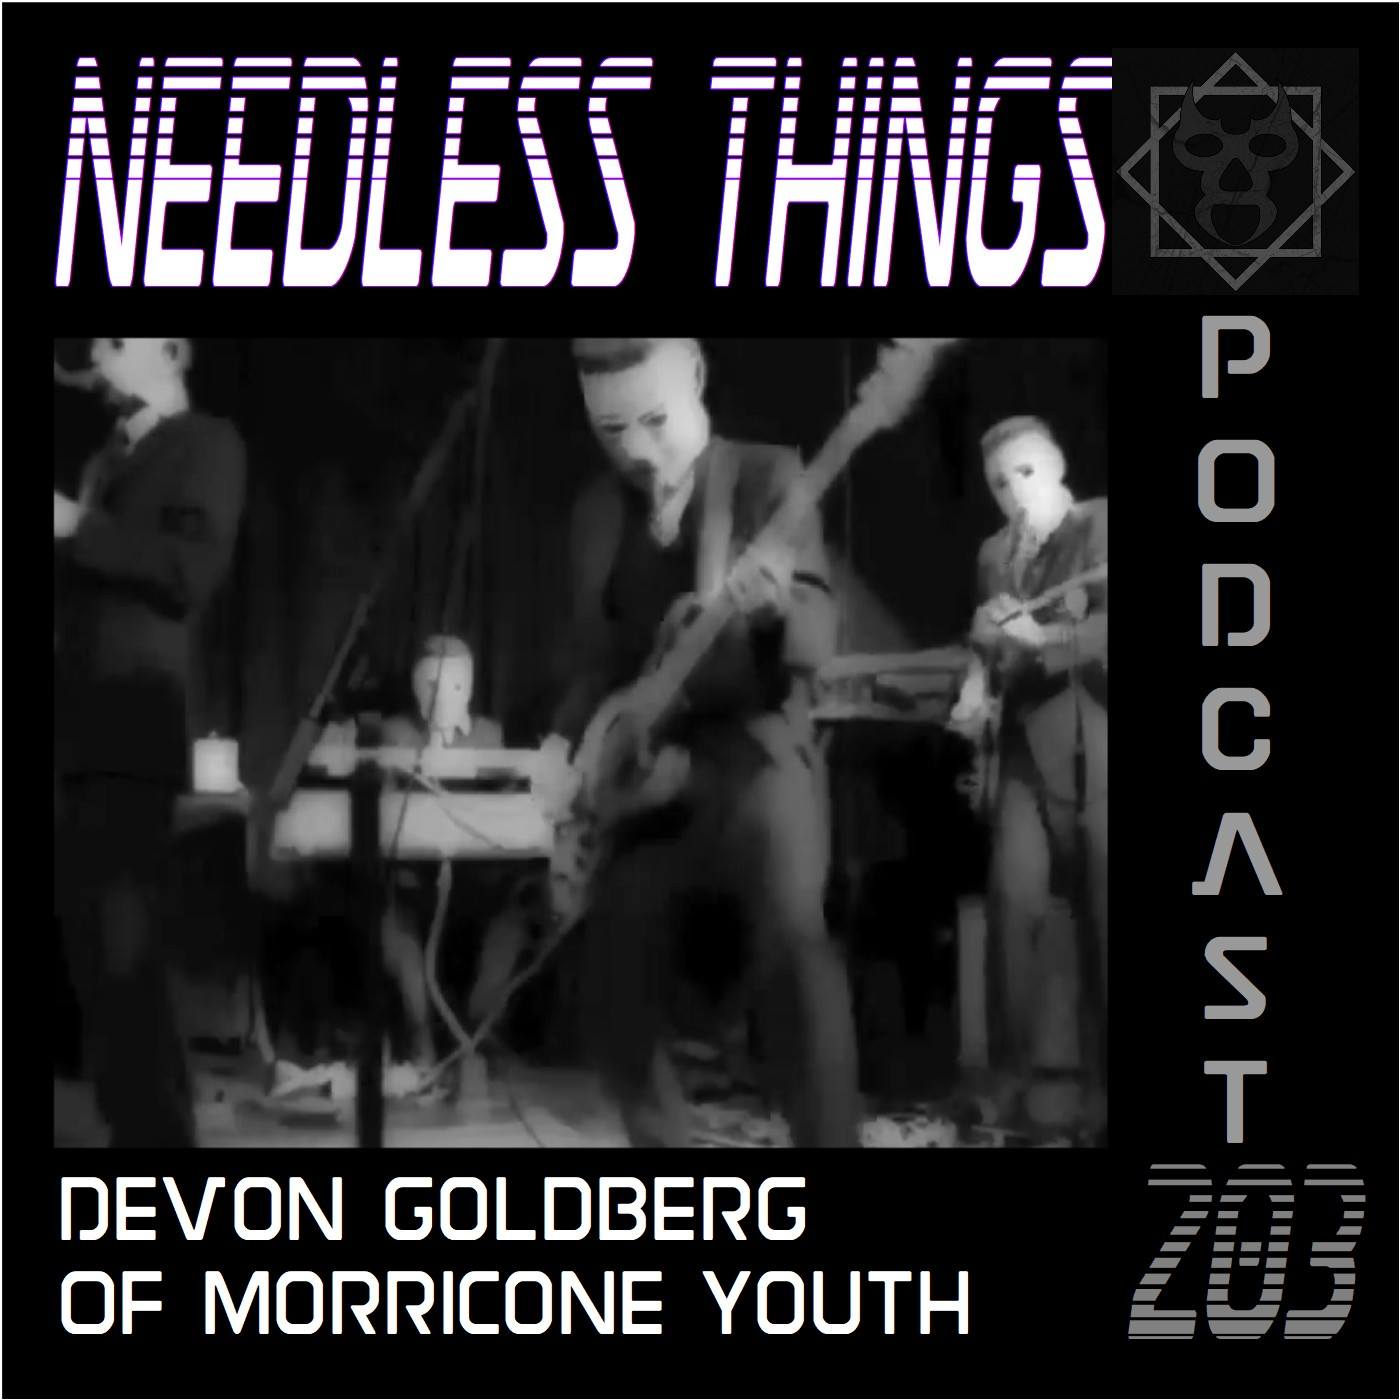 Needless Things Podcast 203 – Devon Goldberg of Morricone Youth